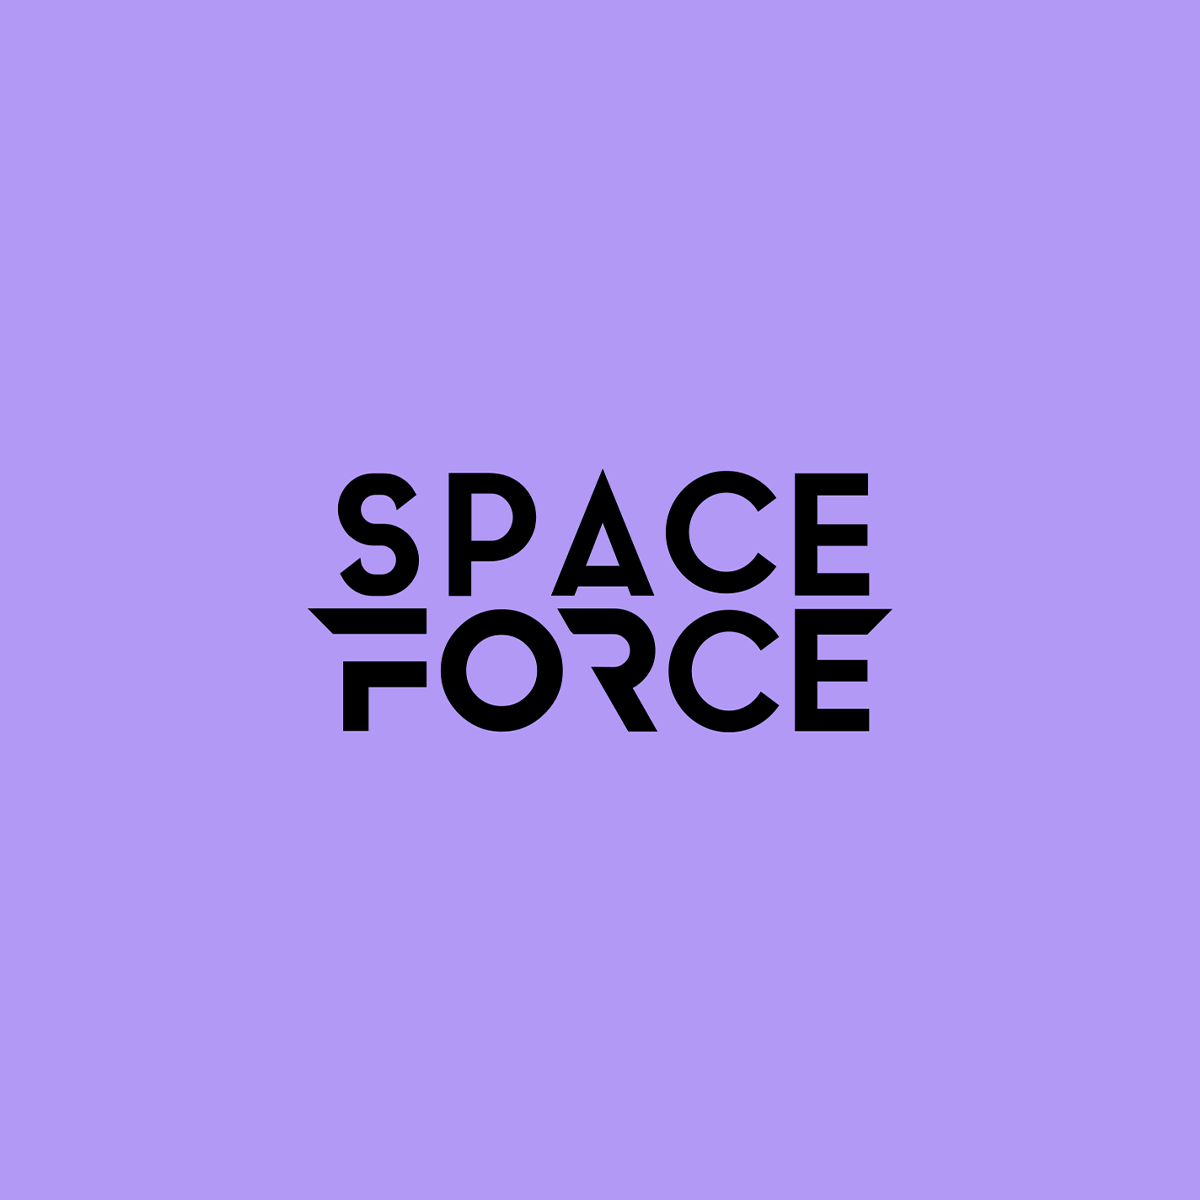 space-force-logo.png